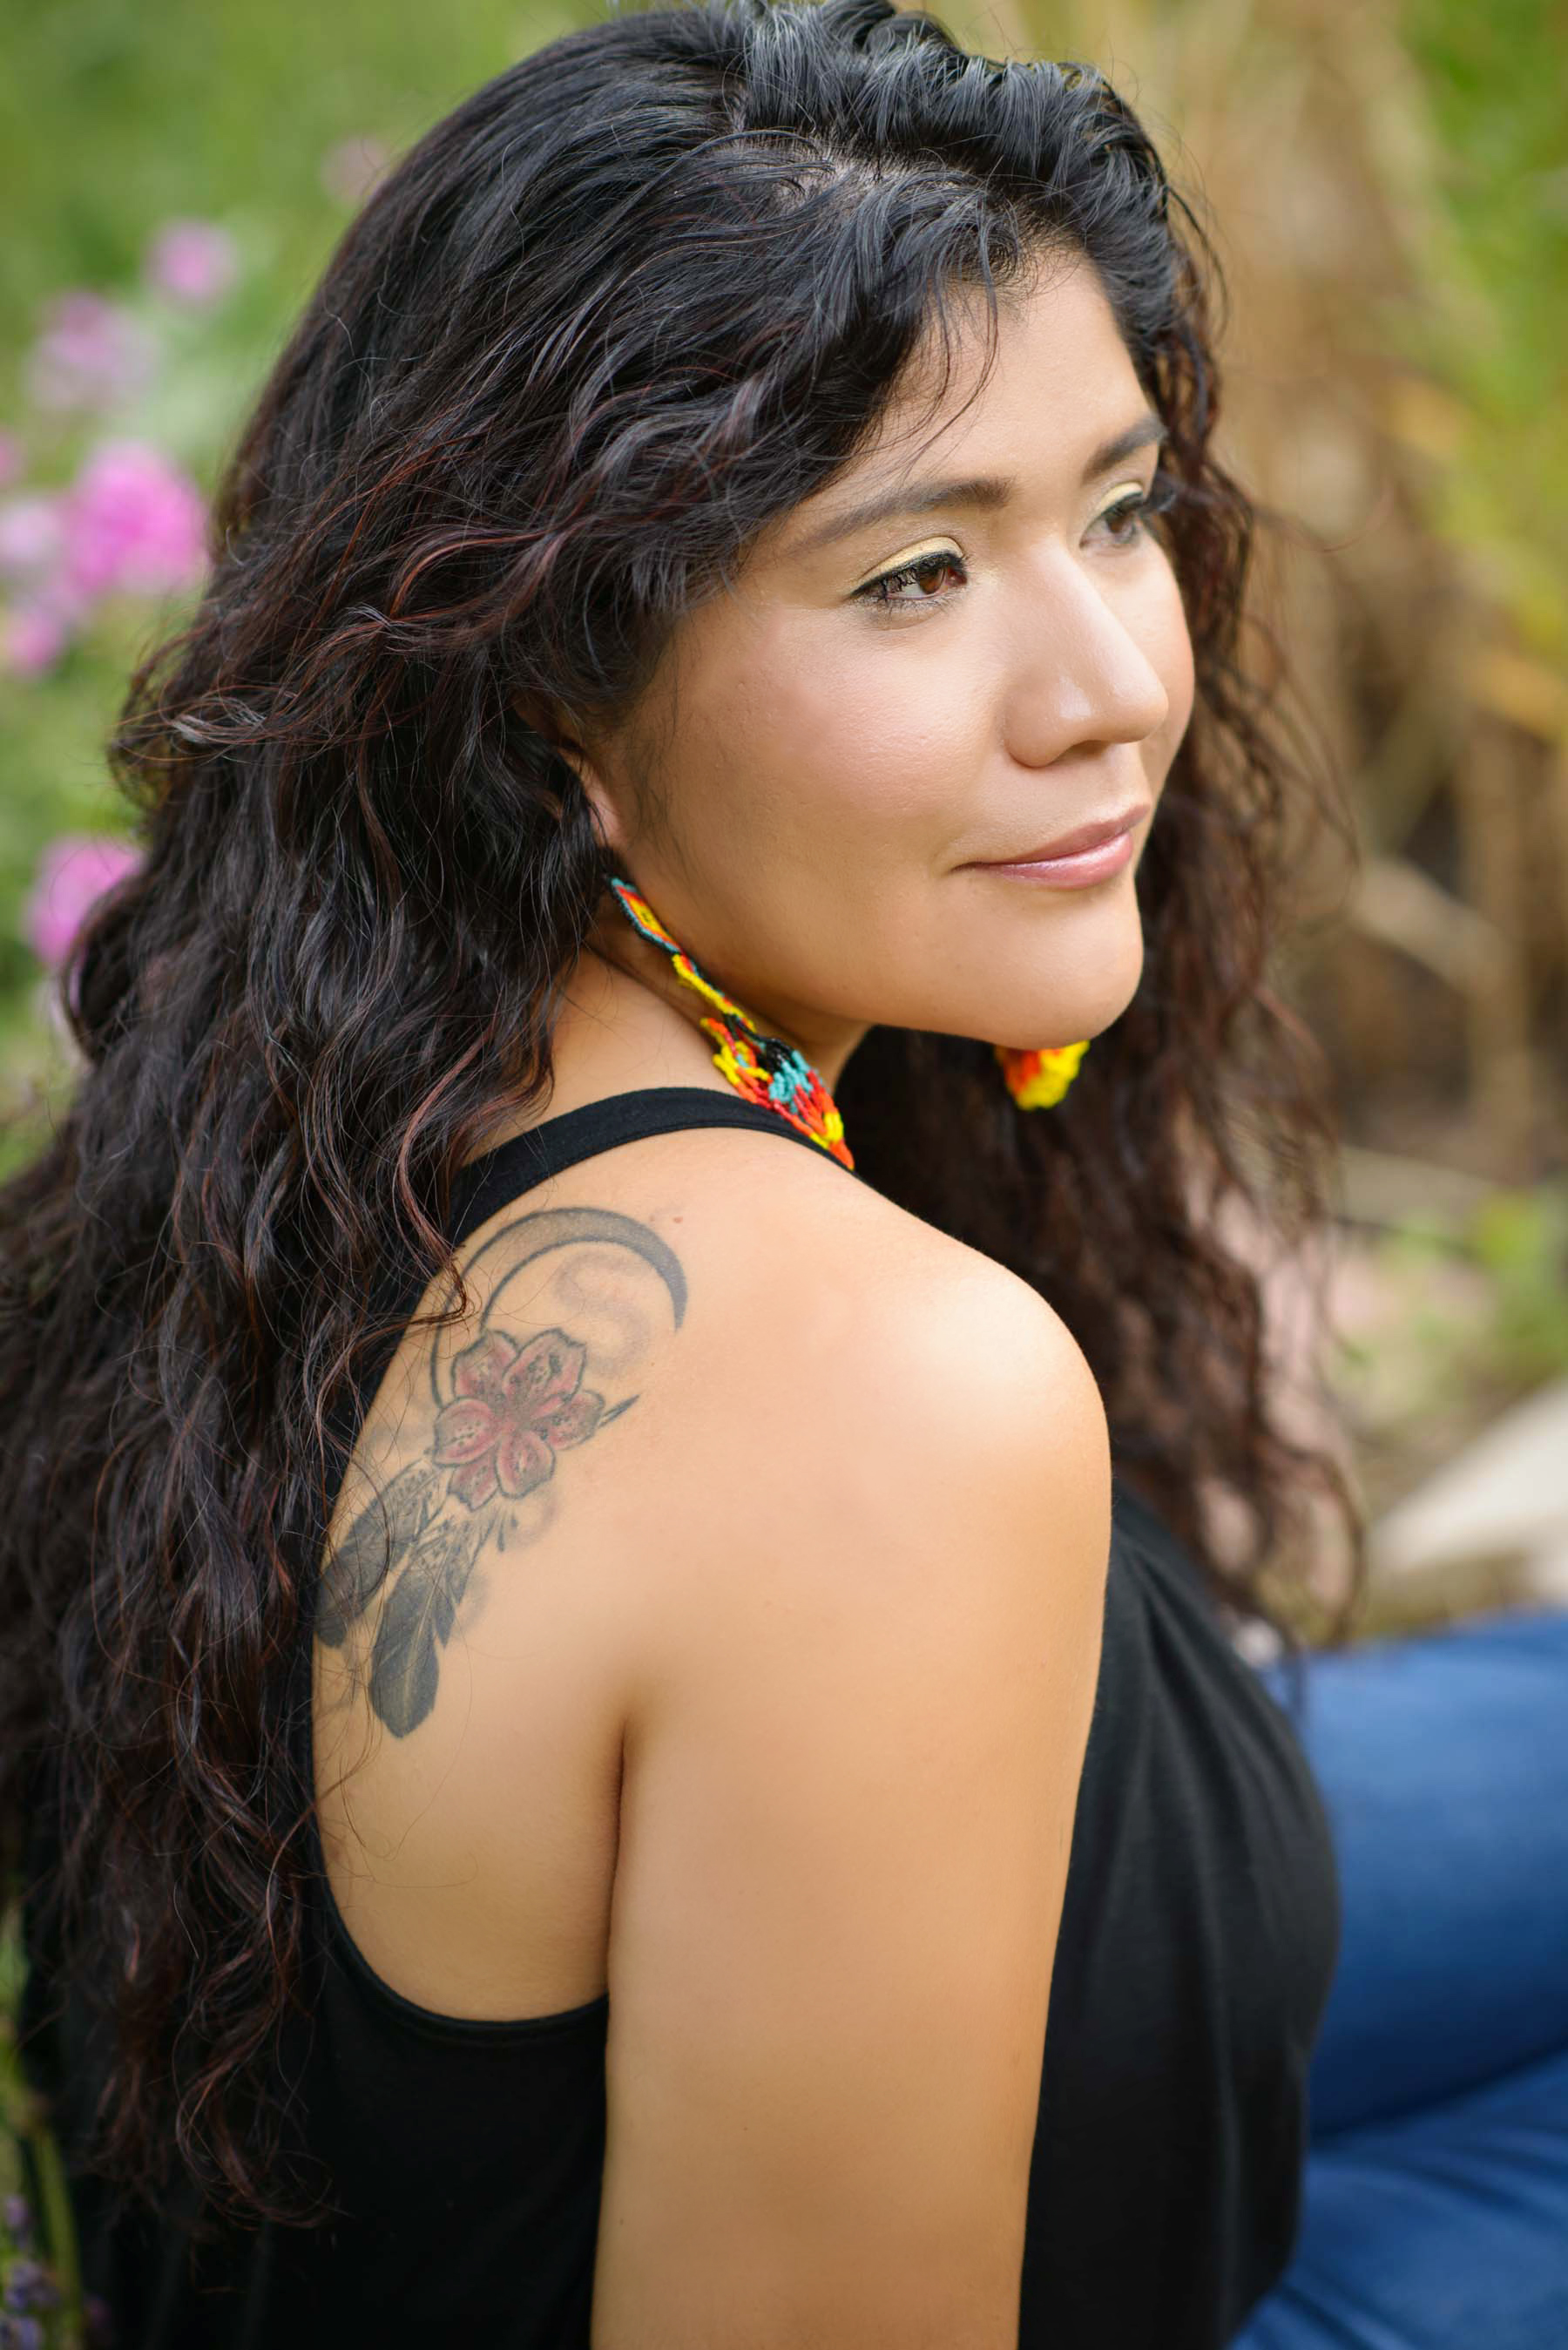 Tanaya Winder (Duckwater Shoshone Tribe). Image courtesy of artist.